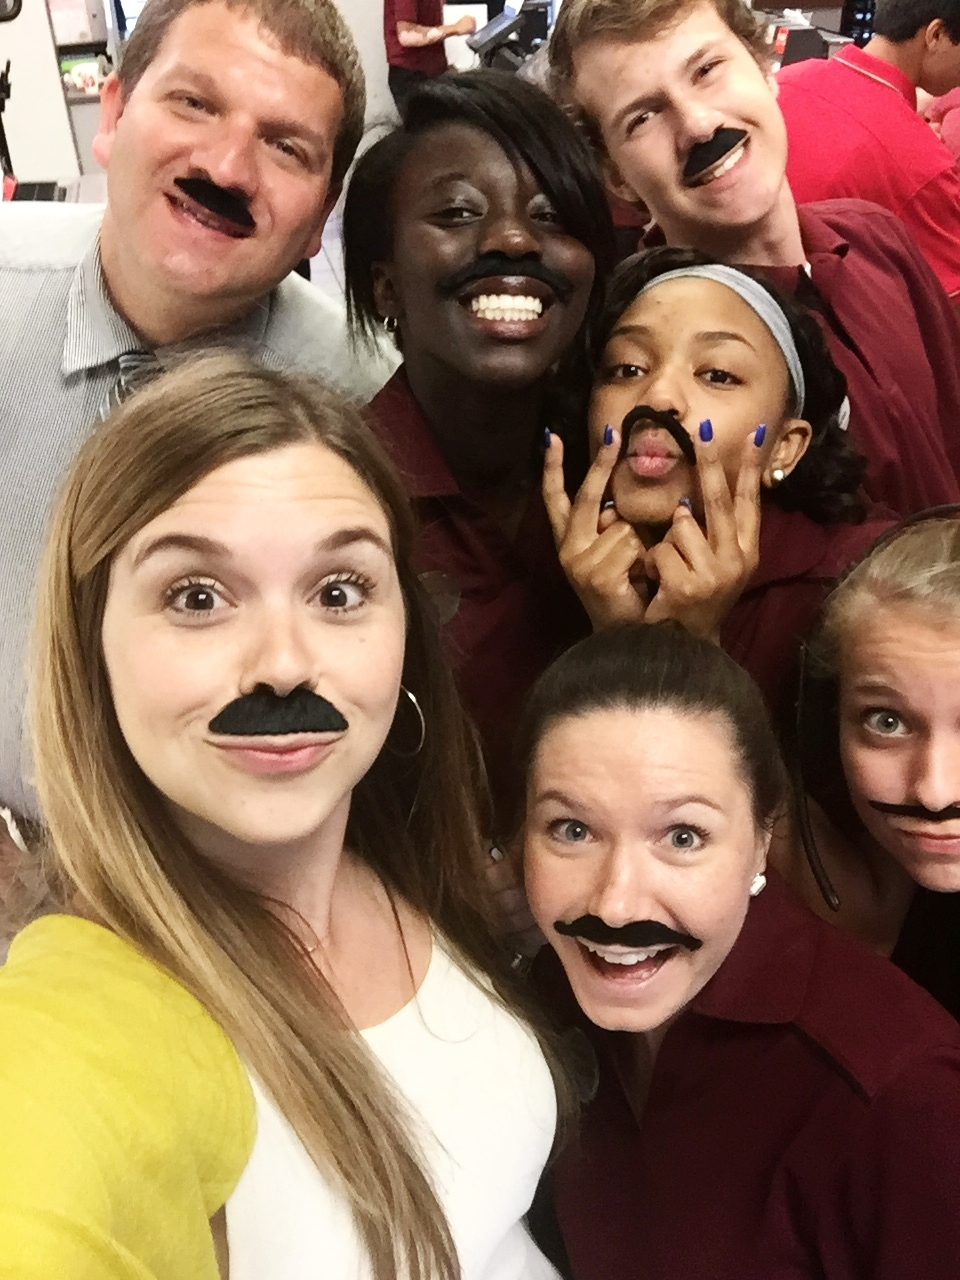 The team sporting mustaches for a promotional event -  Mustache Milkshake Monday.